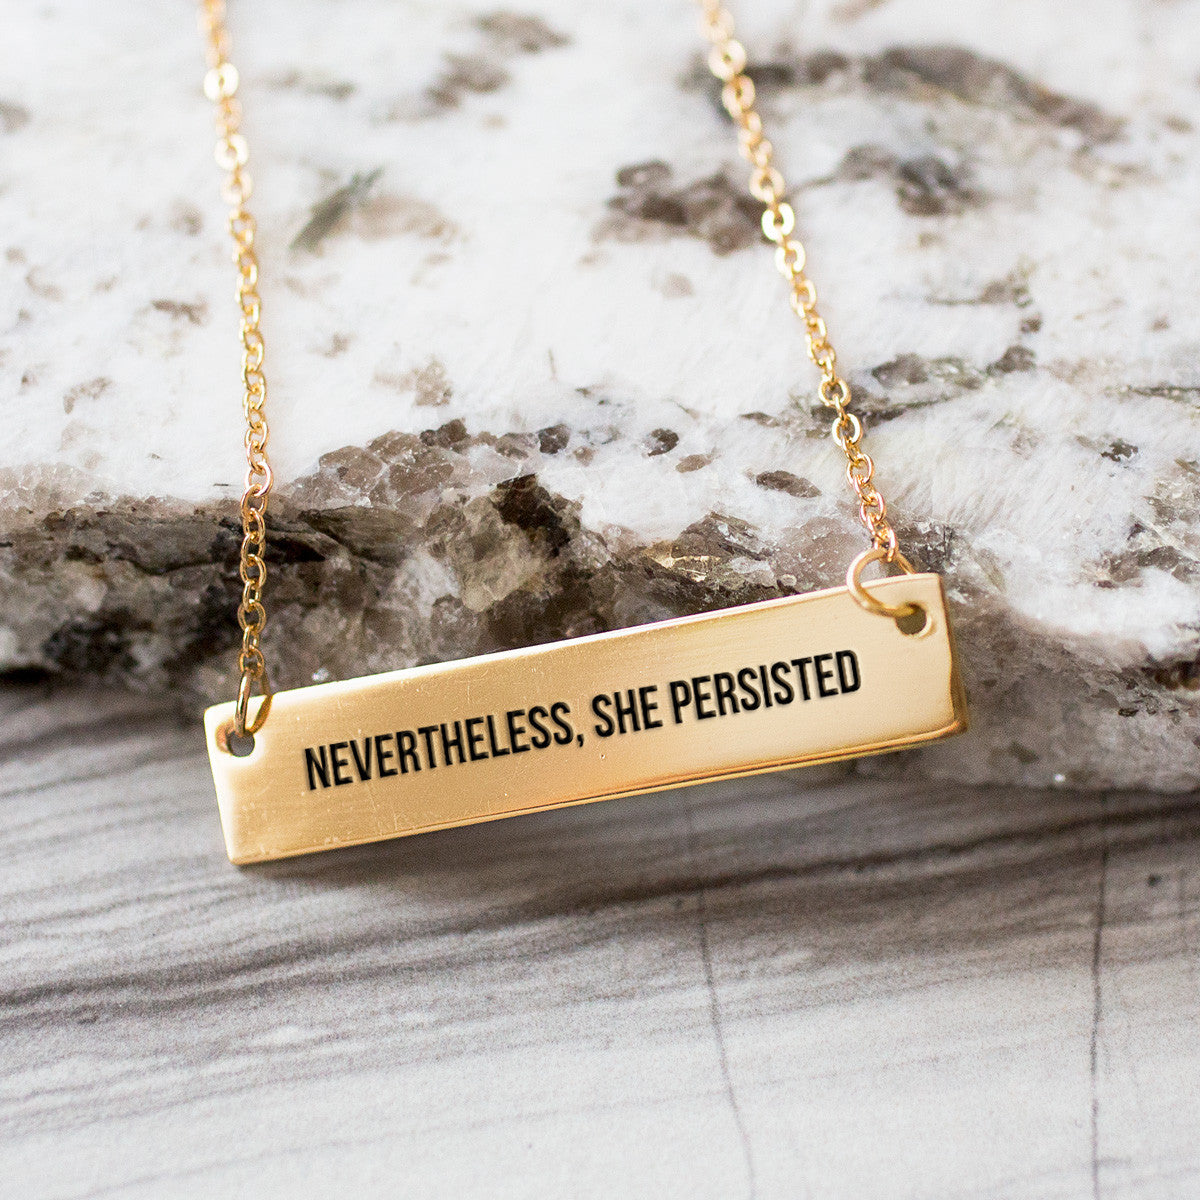 Nevertheless, She Persisted Gold / Silver Bar Necklace